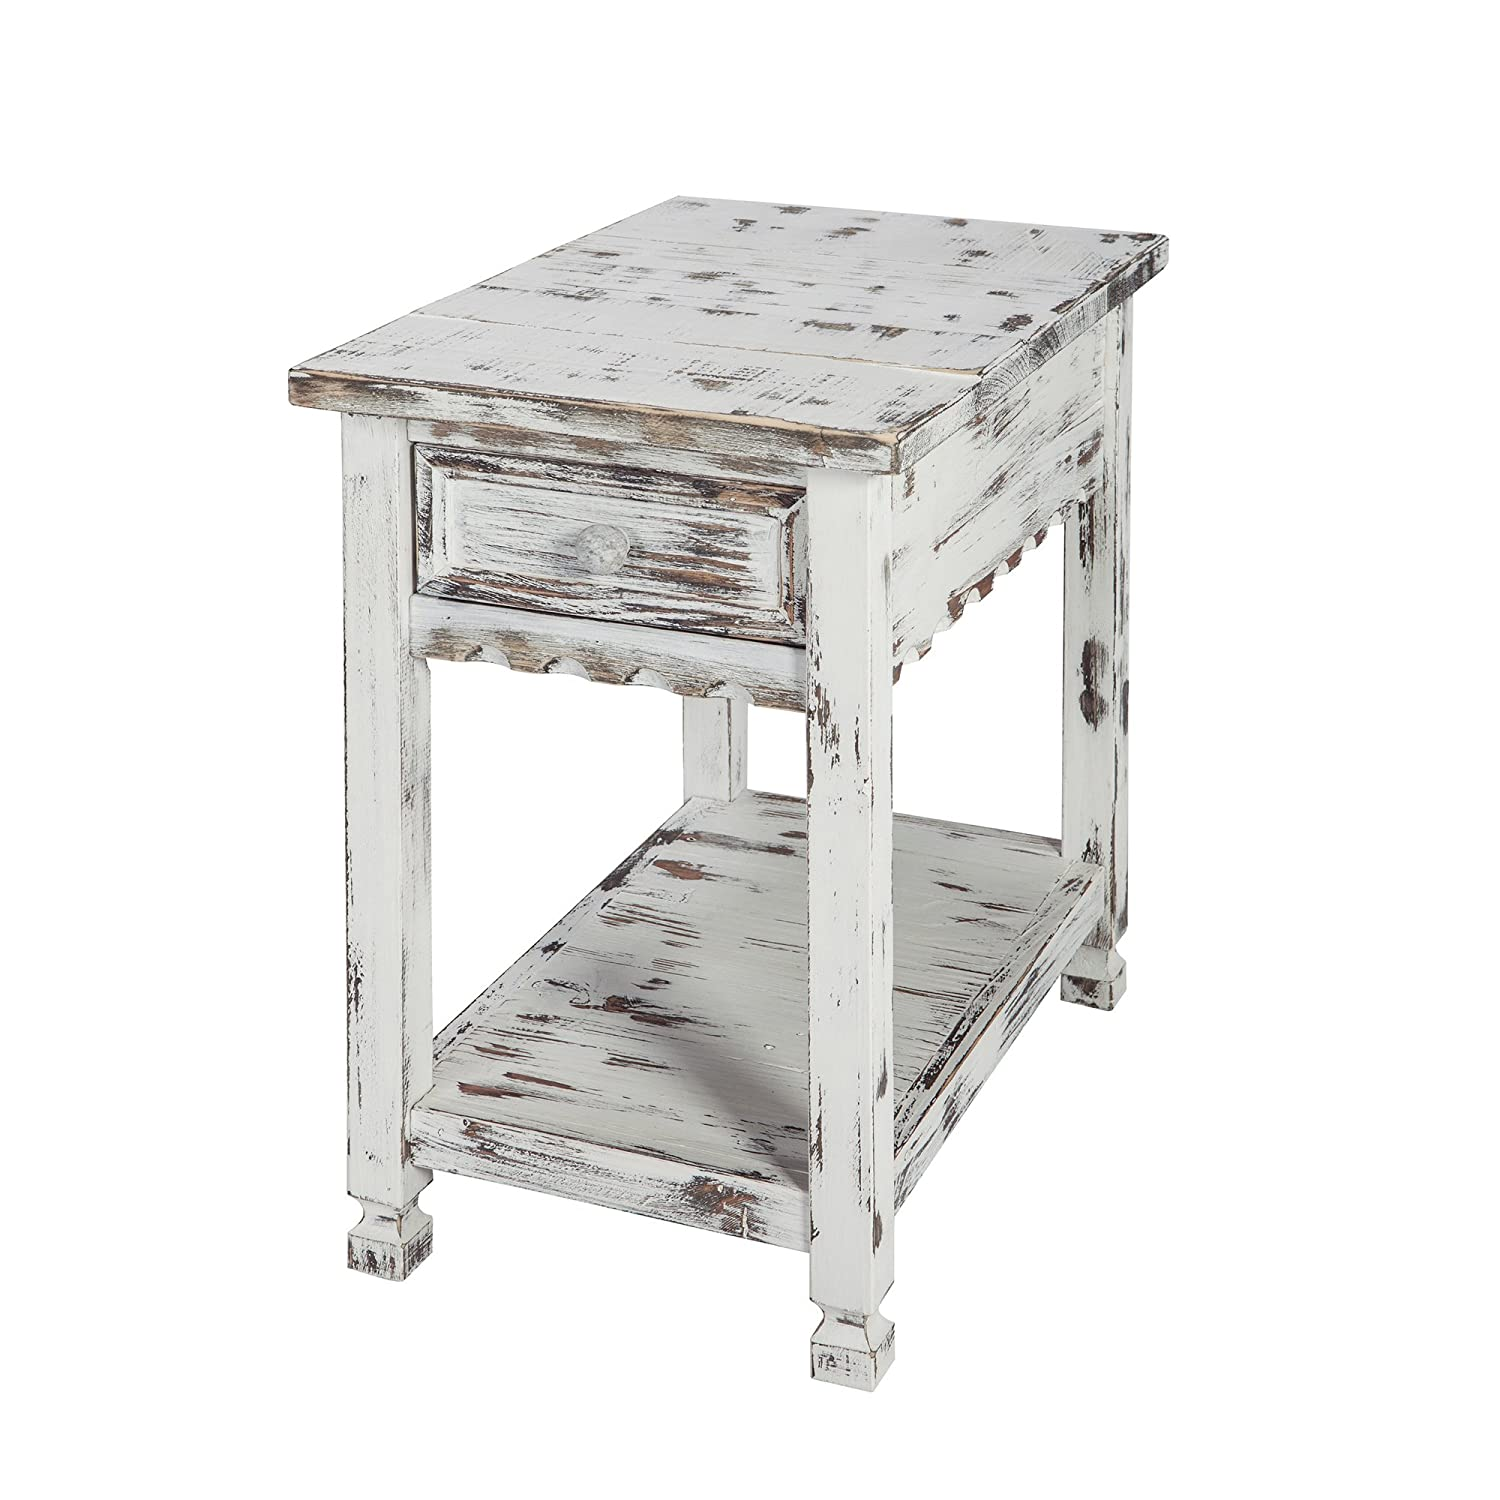 Rustic Cottage Chairside End Table with 1 Drawer and 1 Shelf, White Antique